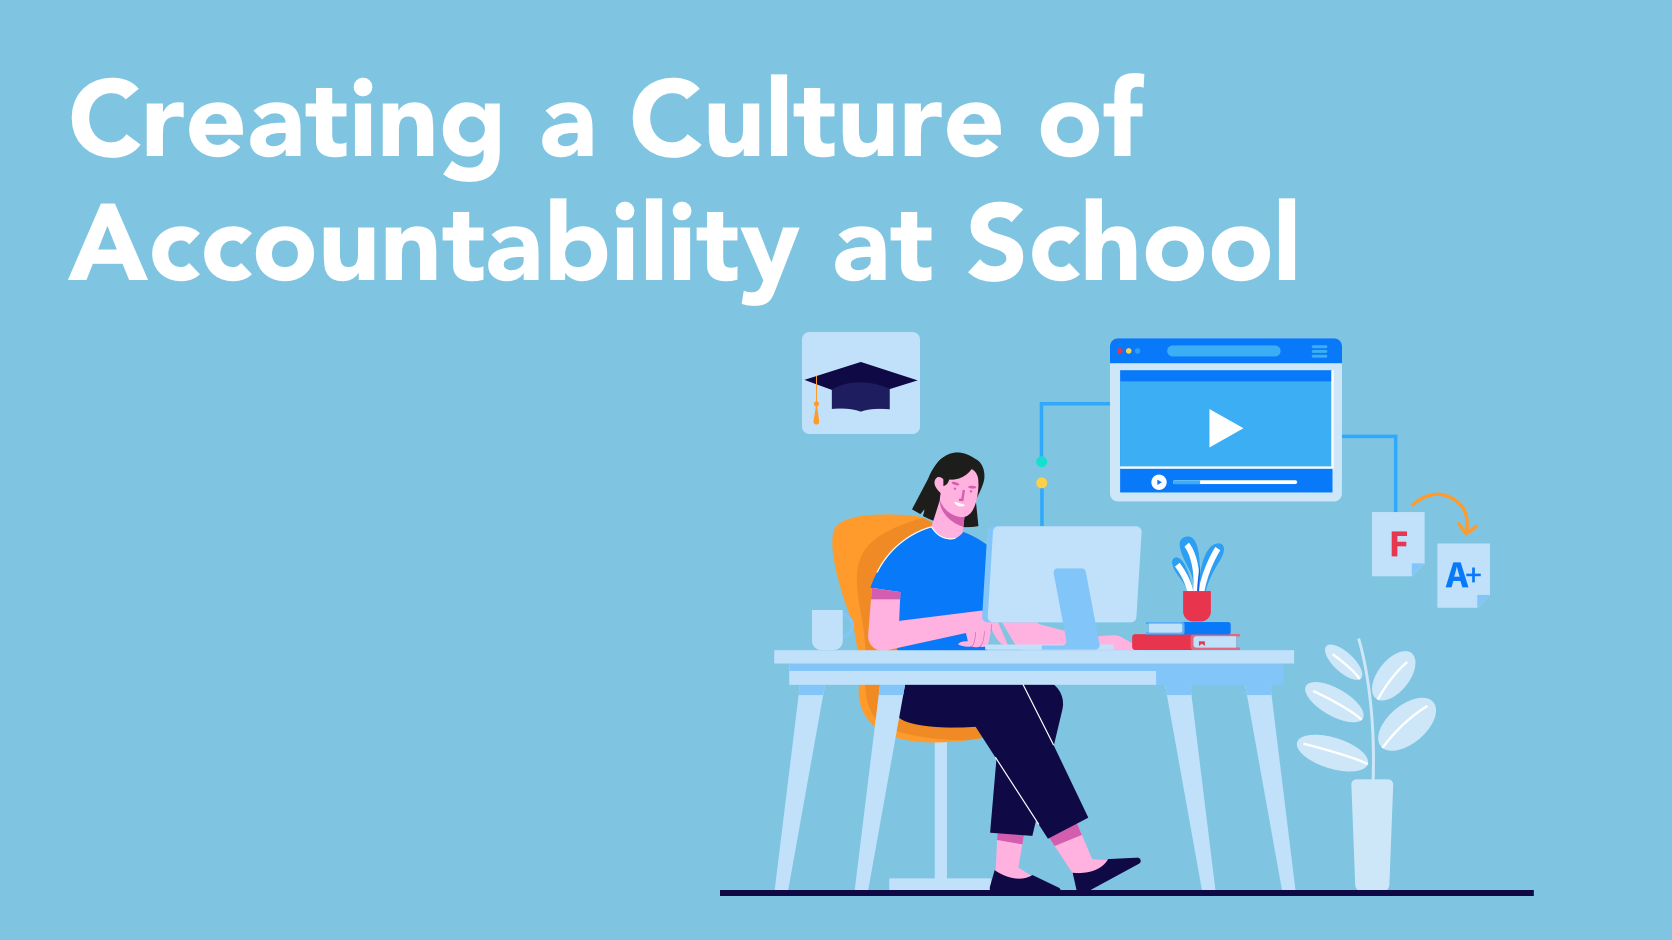 Creating a Culture of Accountability at School